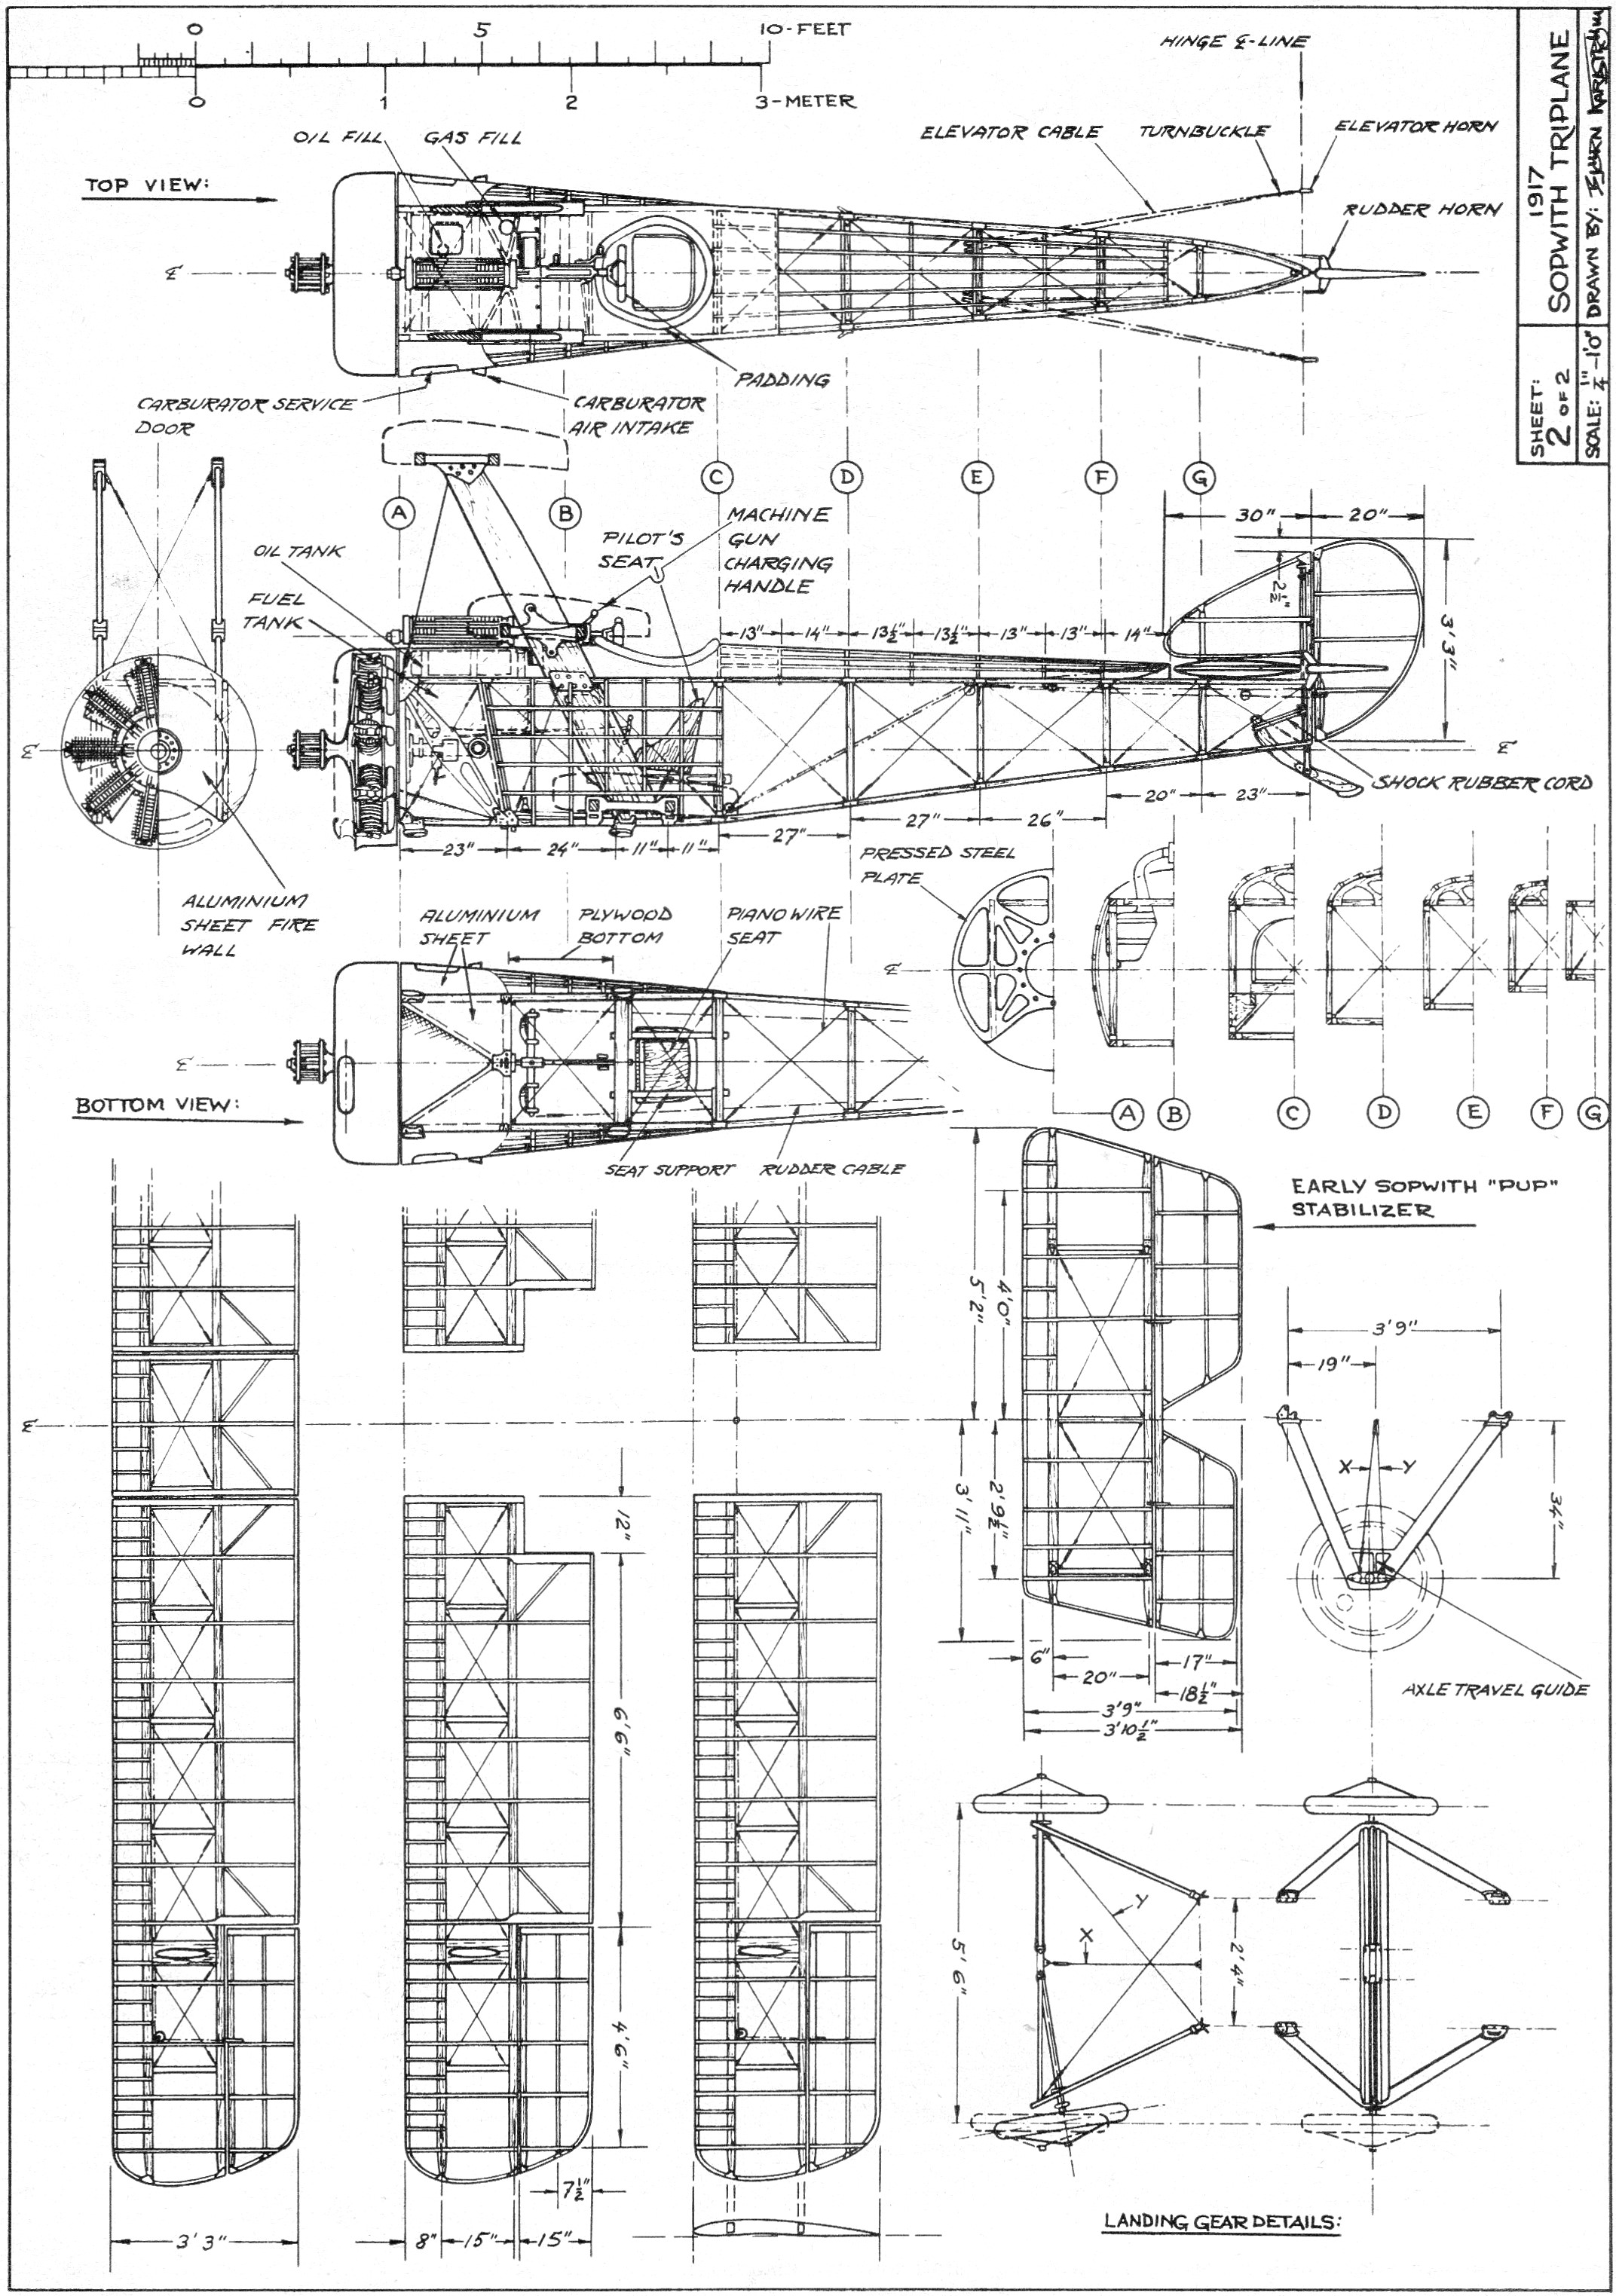 plans rms titanic deck plans pirate ship free model boat plans ...